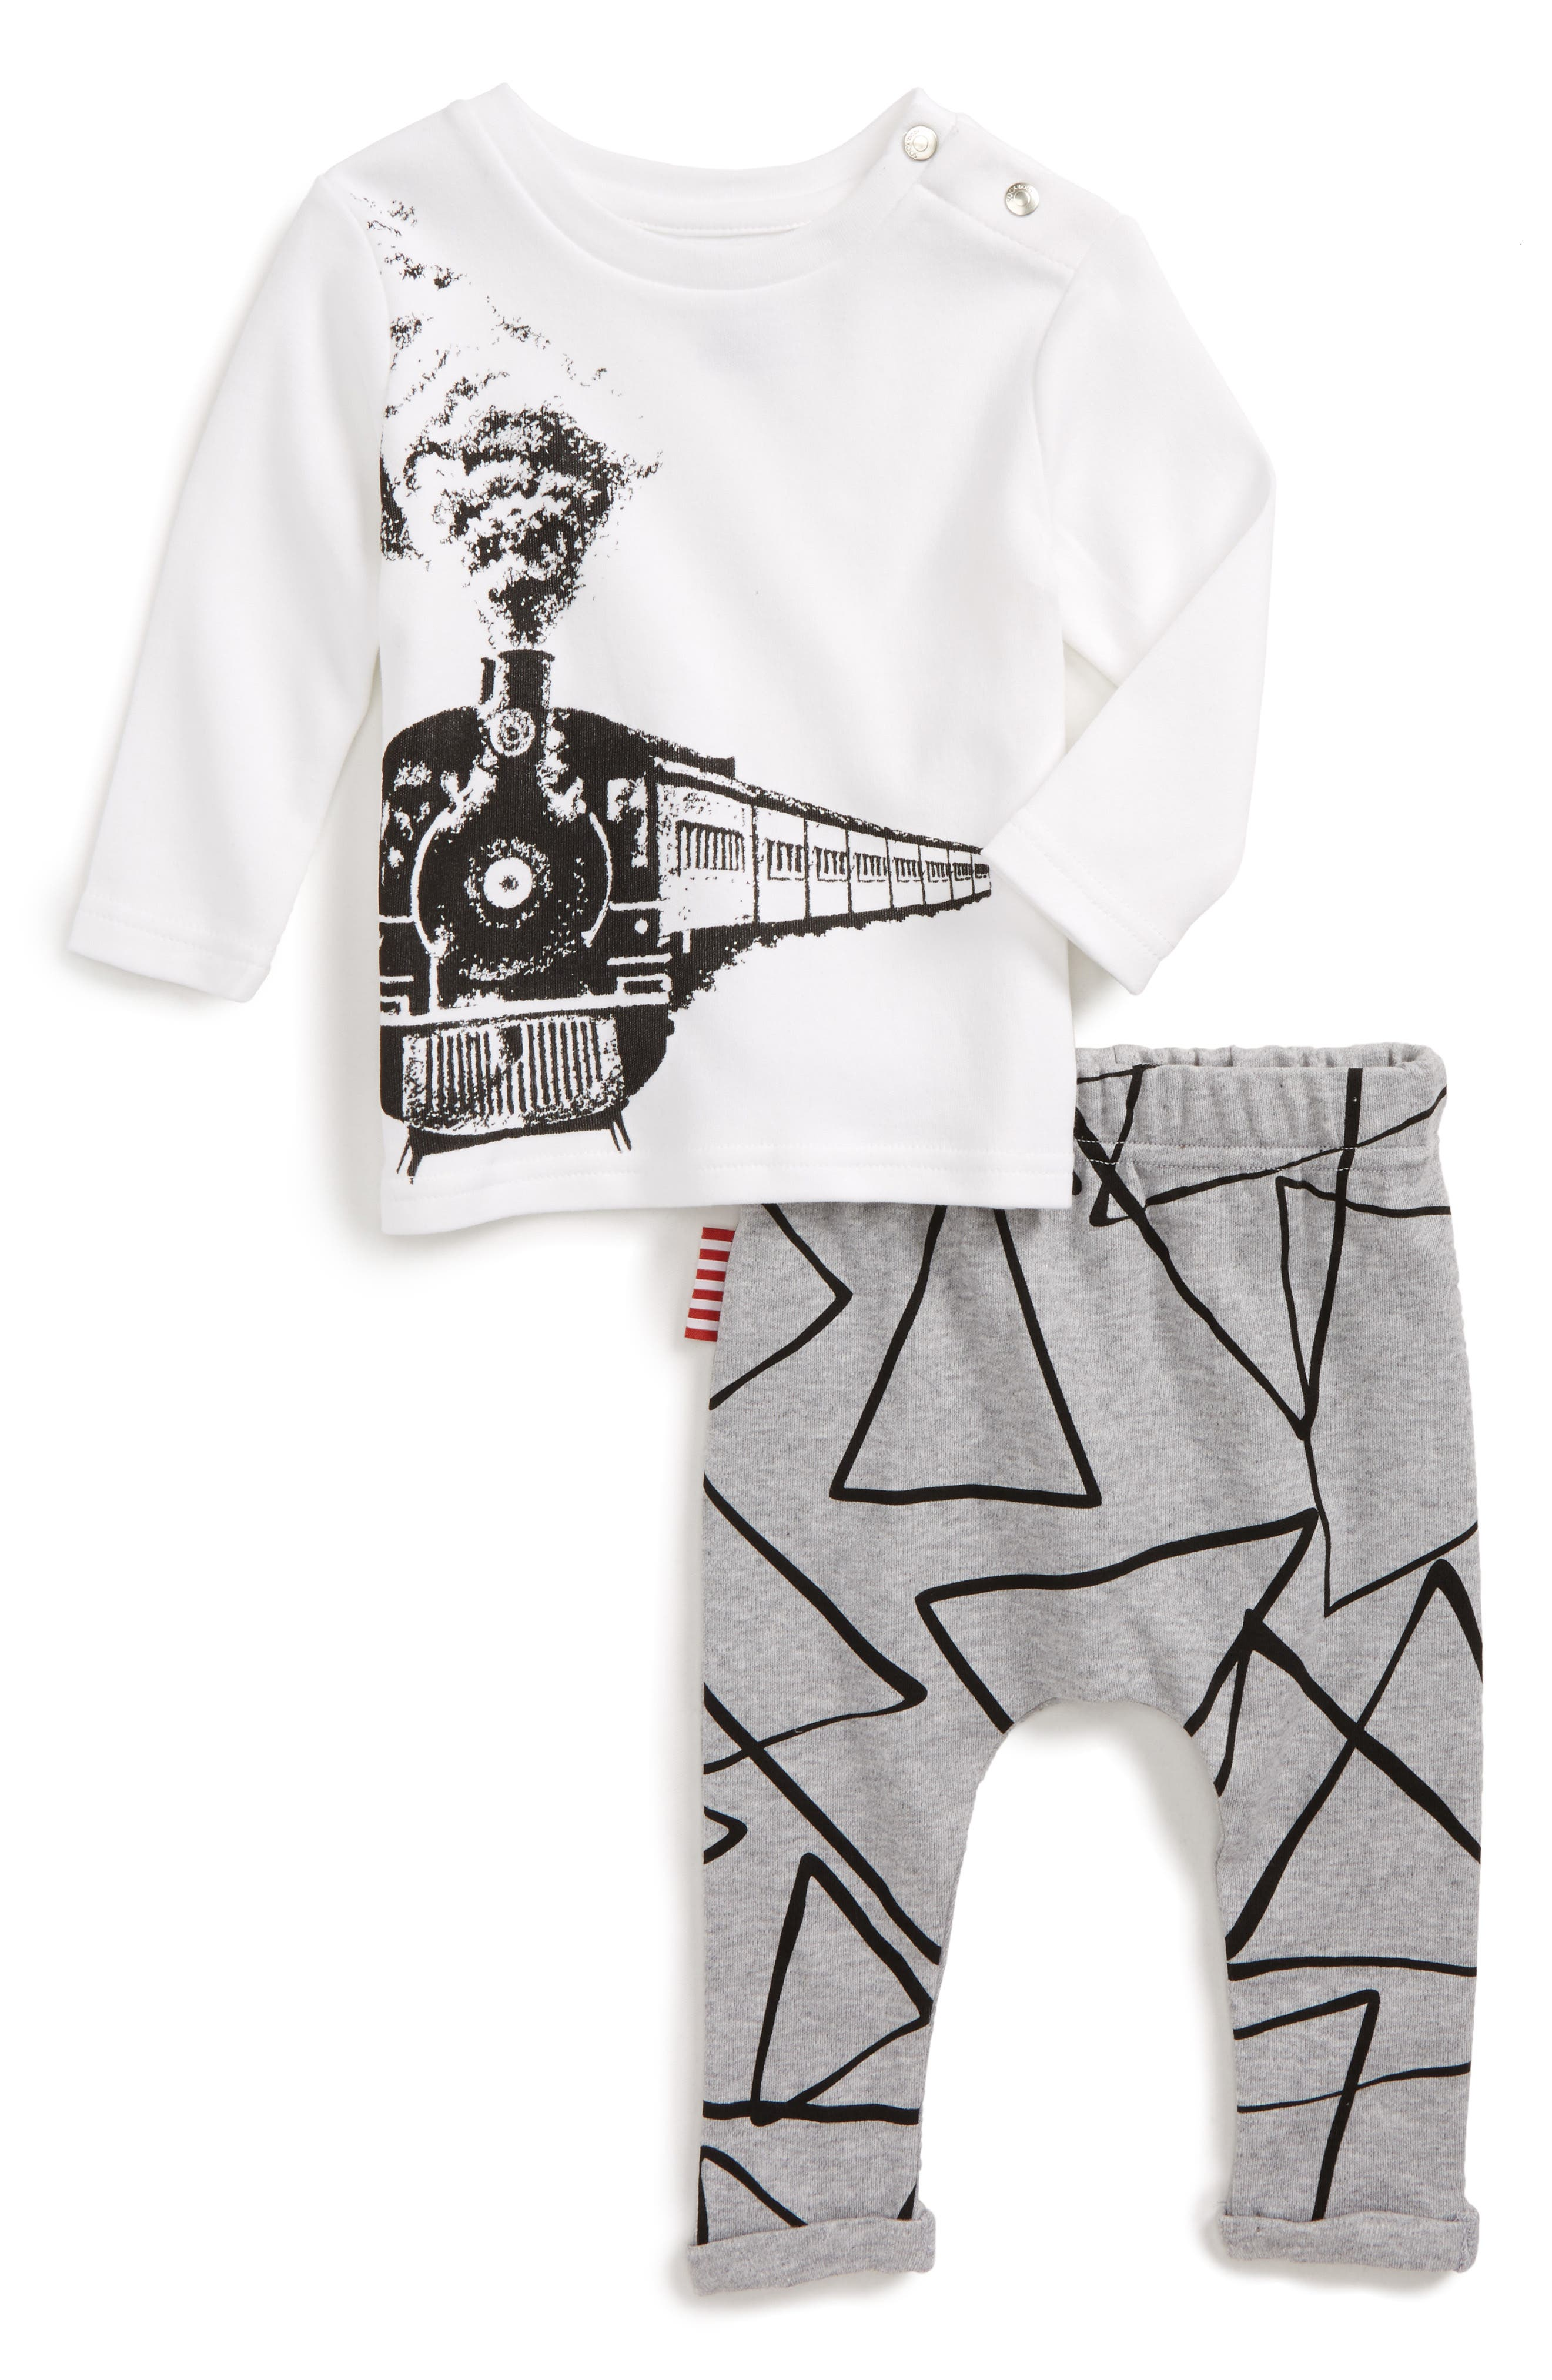 Main Image - SOOKIbaby Train T-Shirt & Leggings Set (Baby Boys)